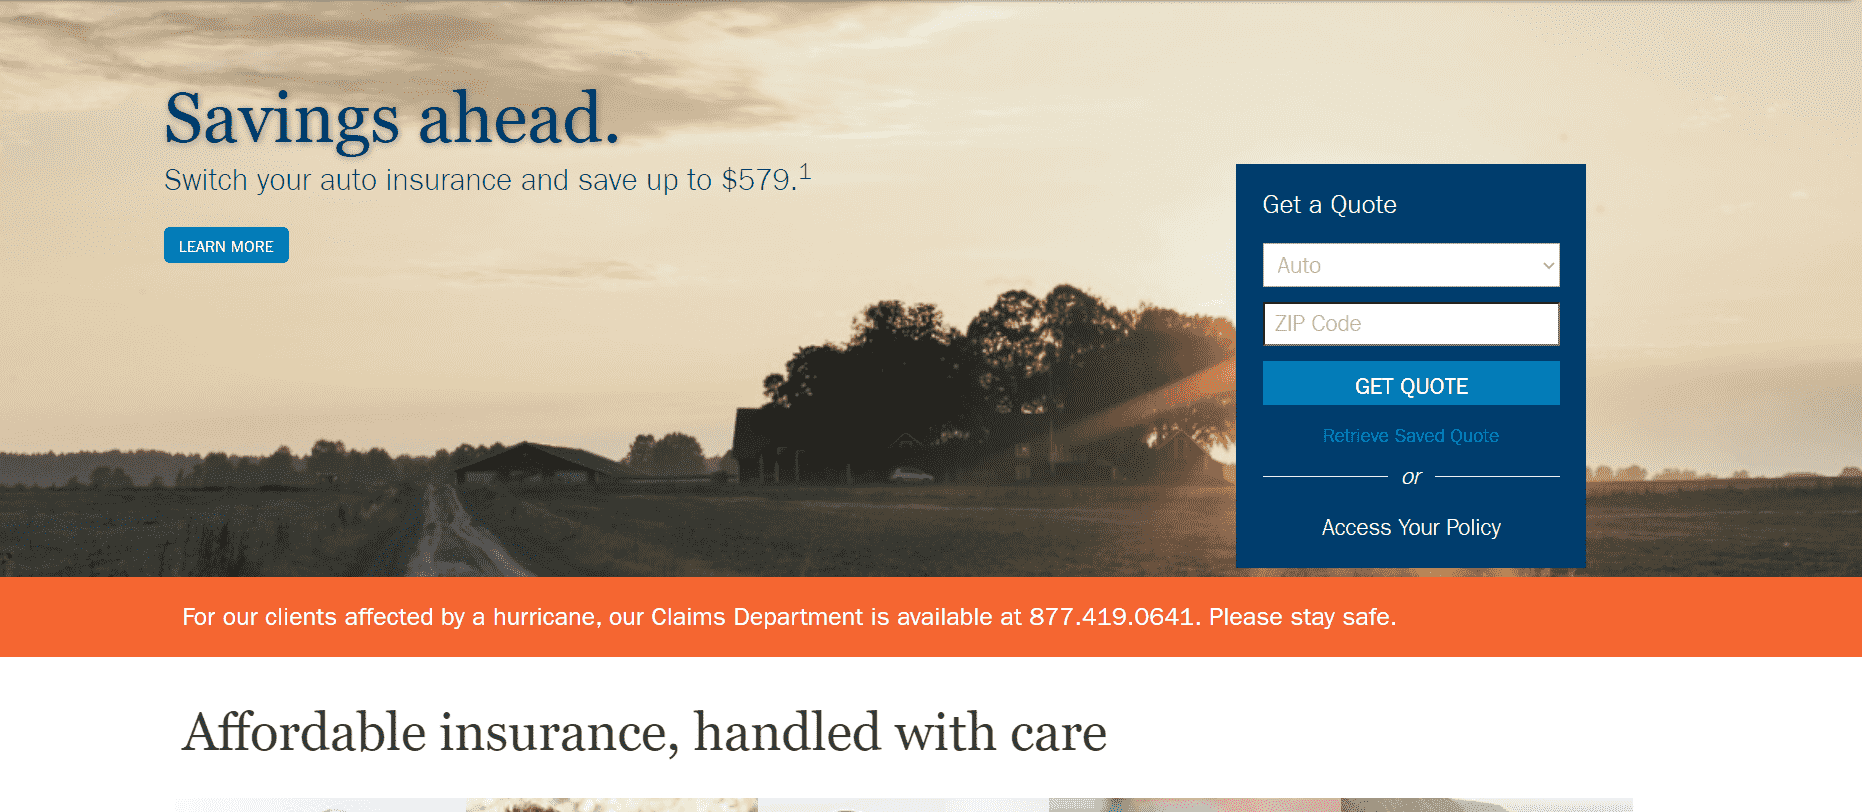 Ameriprise Auto And Home Insurance reviews and complaints